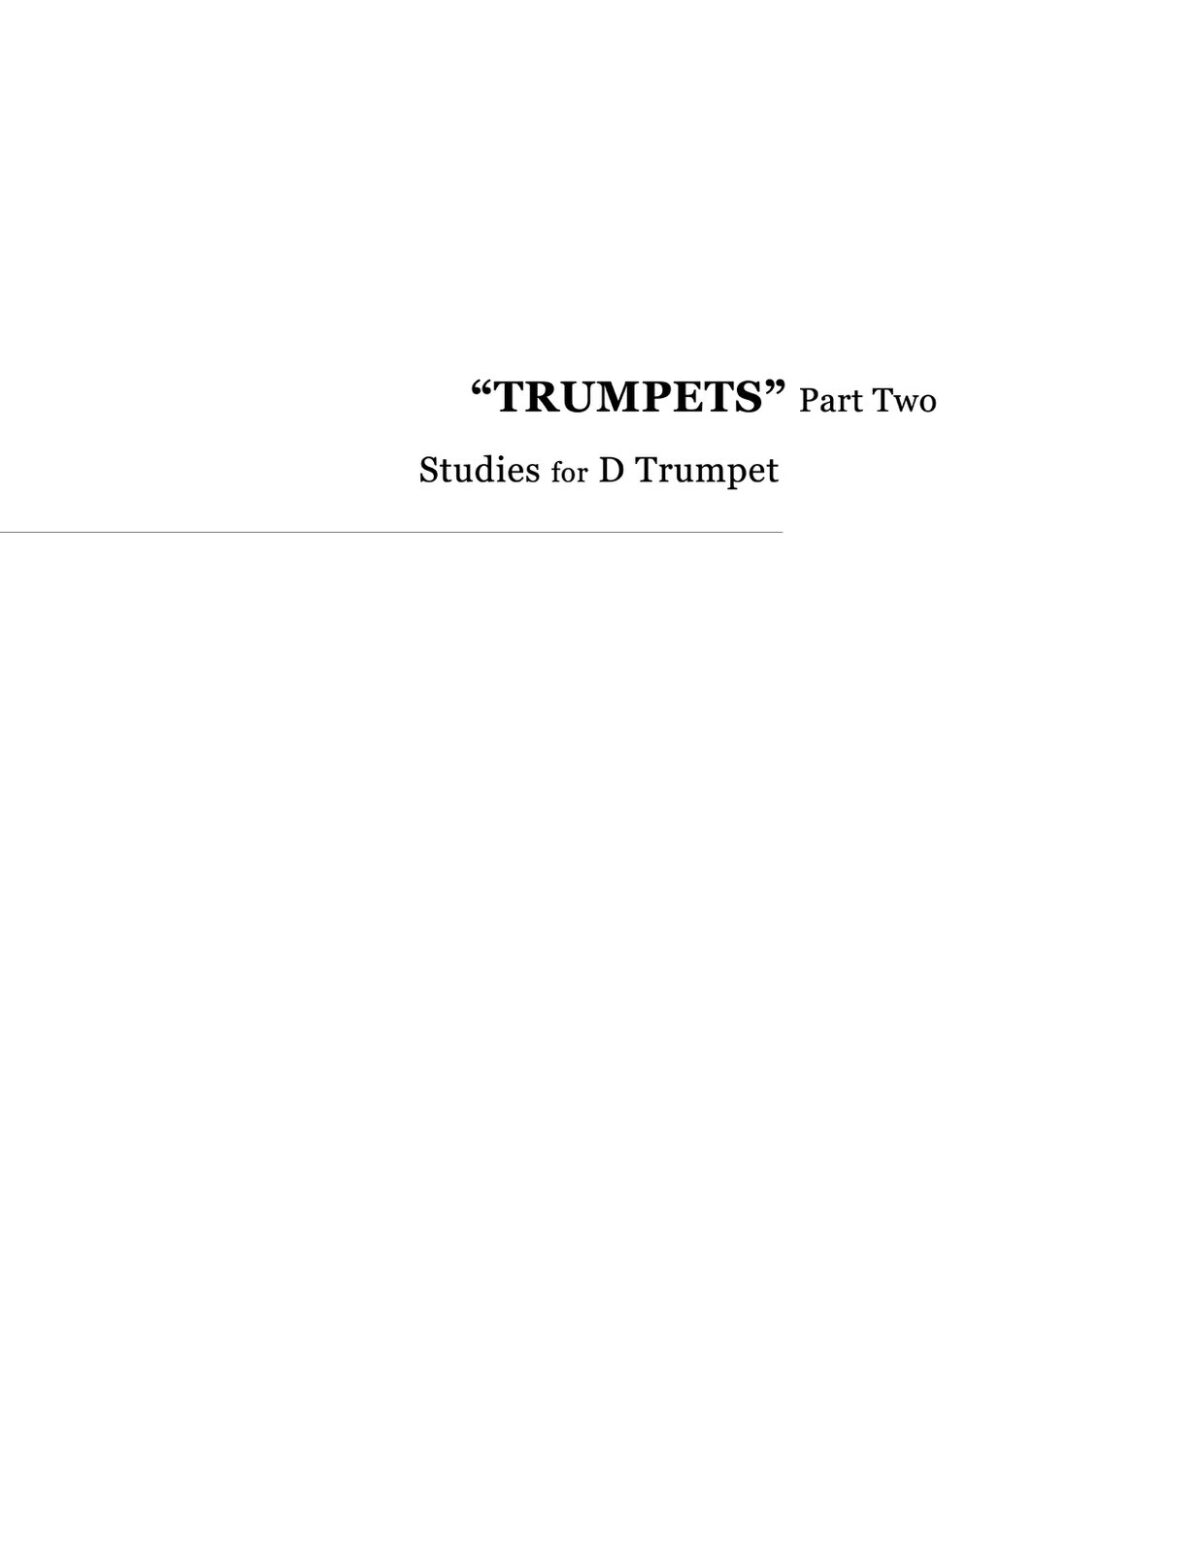 Broiles, Trumpets Studies for Bb and D Trumpet-p155